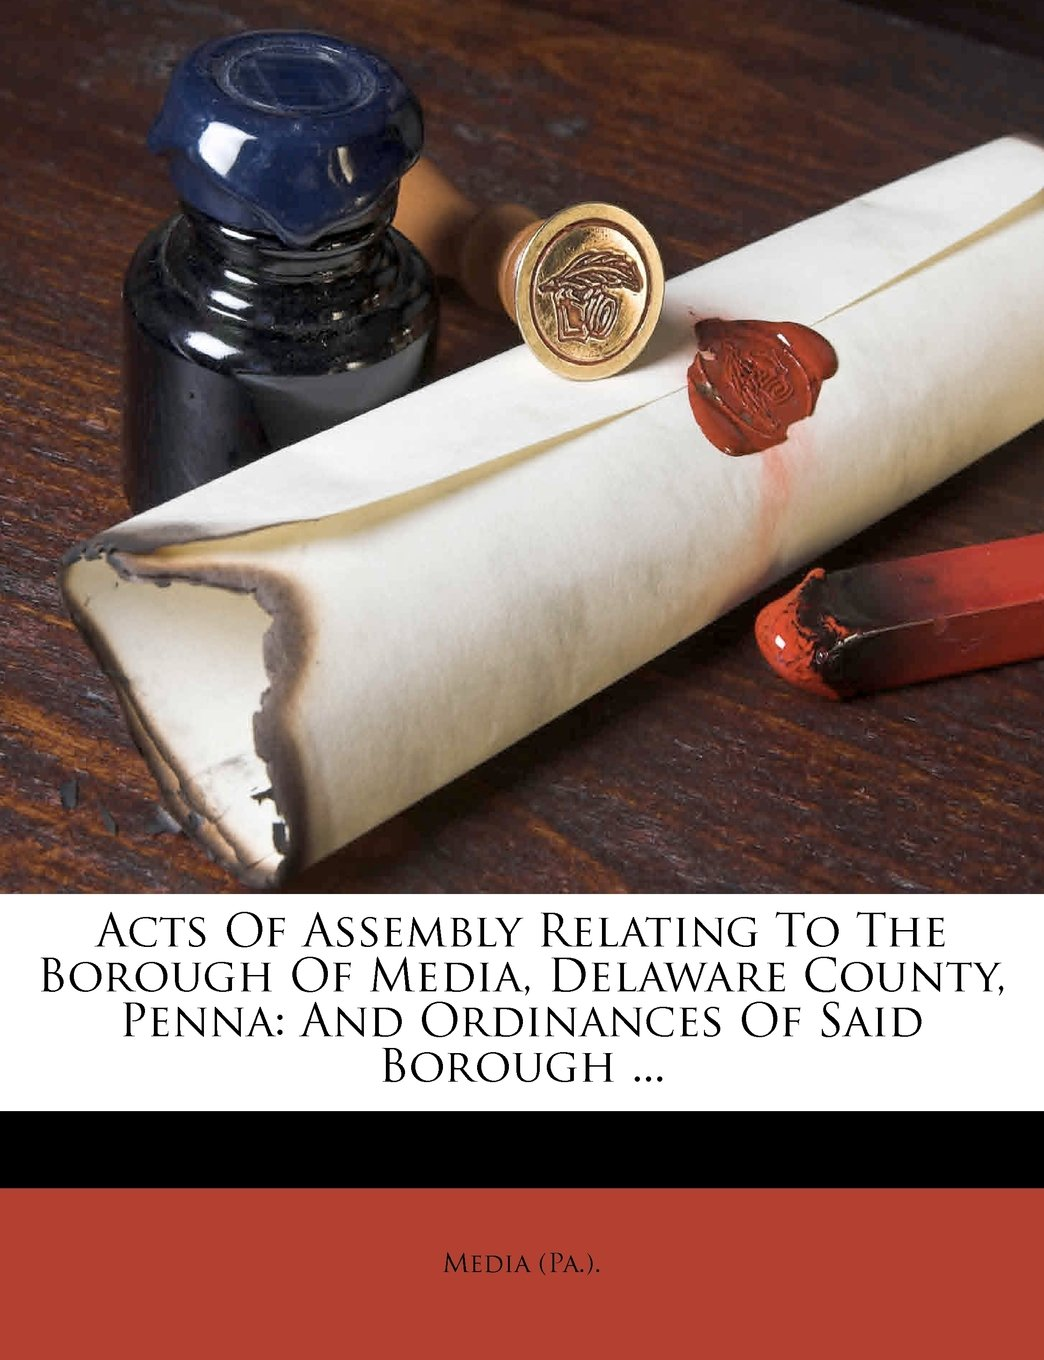 Download Acts Of Assembly Relating To The Borough Of Media, Delaware County, Penna: And Ordinances Of Said Borough ... pdf